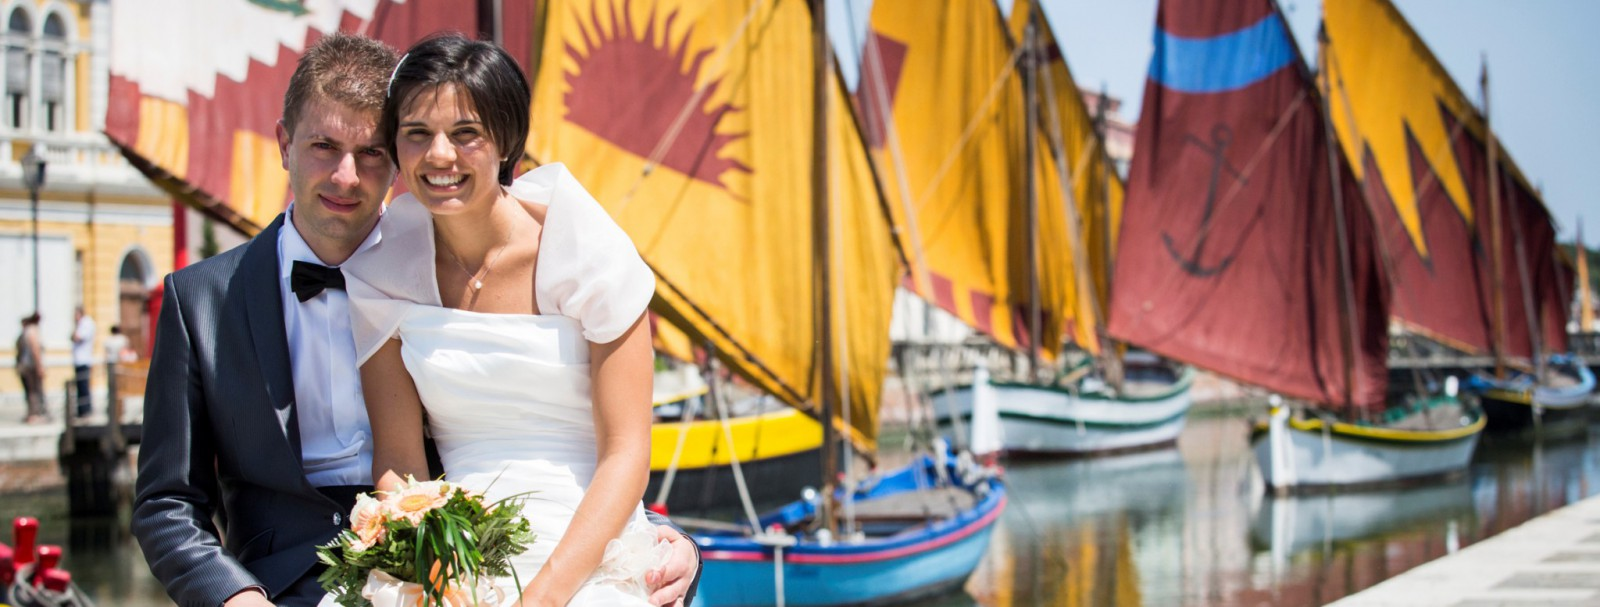 f3b830aa8d4a Search Destination Wedding company for your event in Italy!